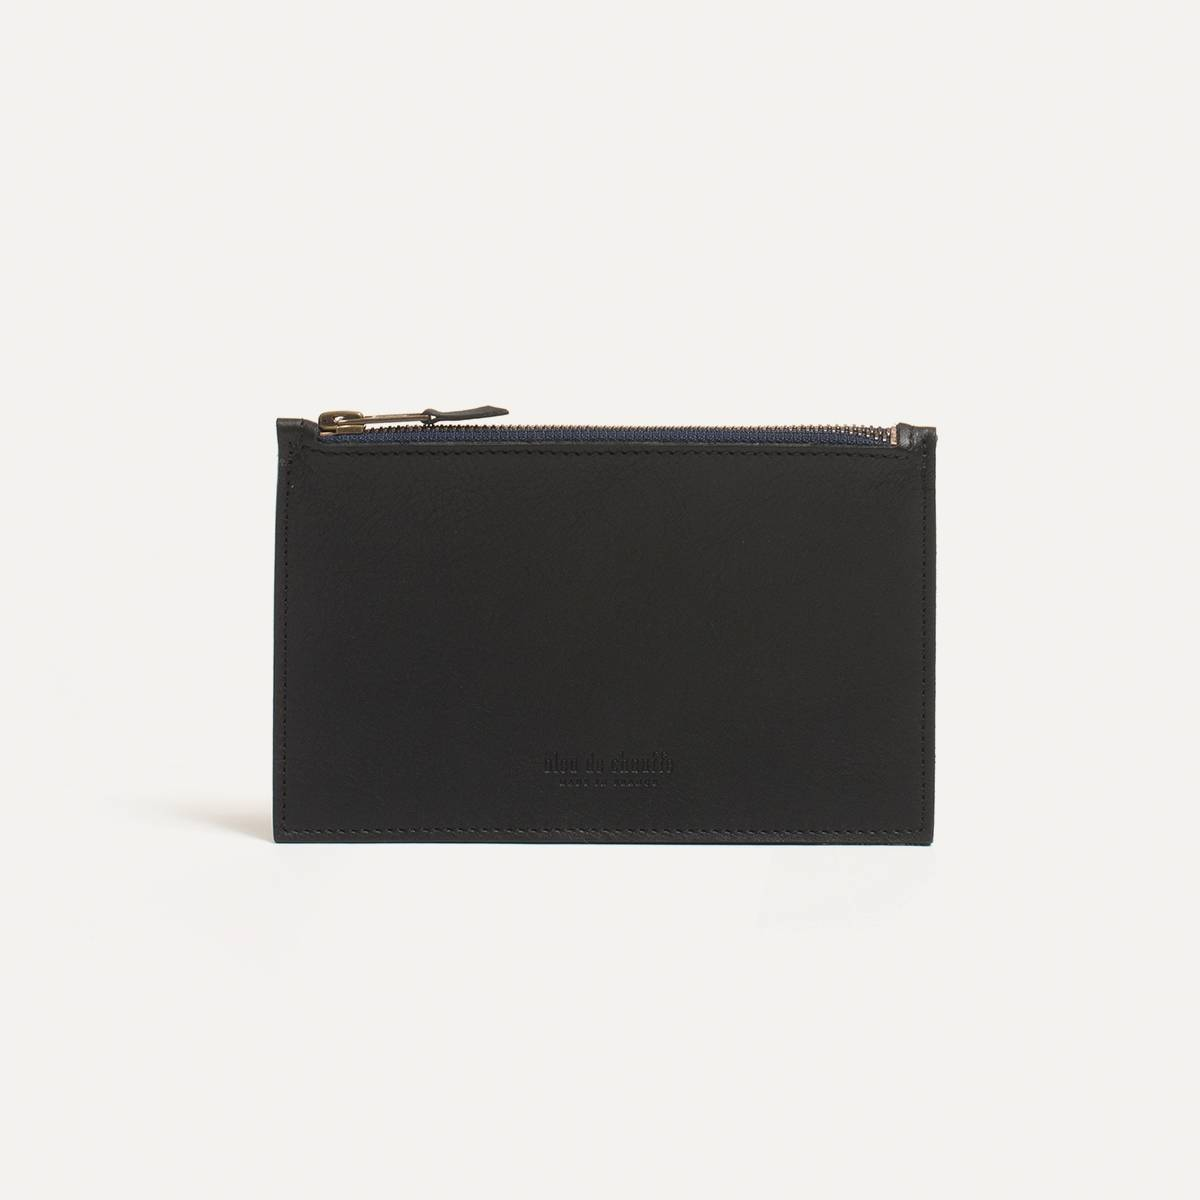 Leather Pouch COSMO S - Black (image n°2)